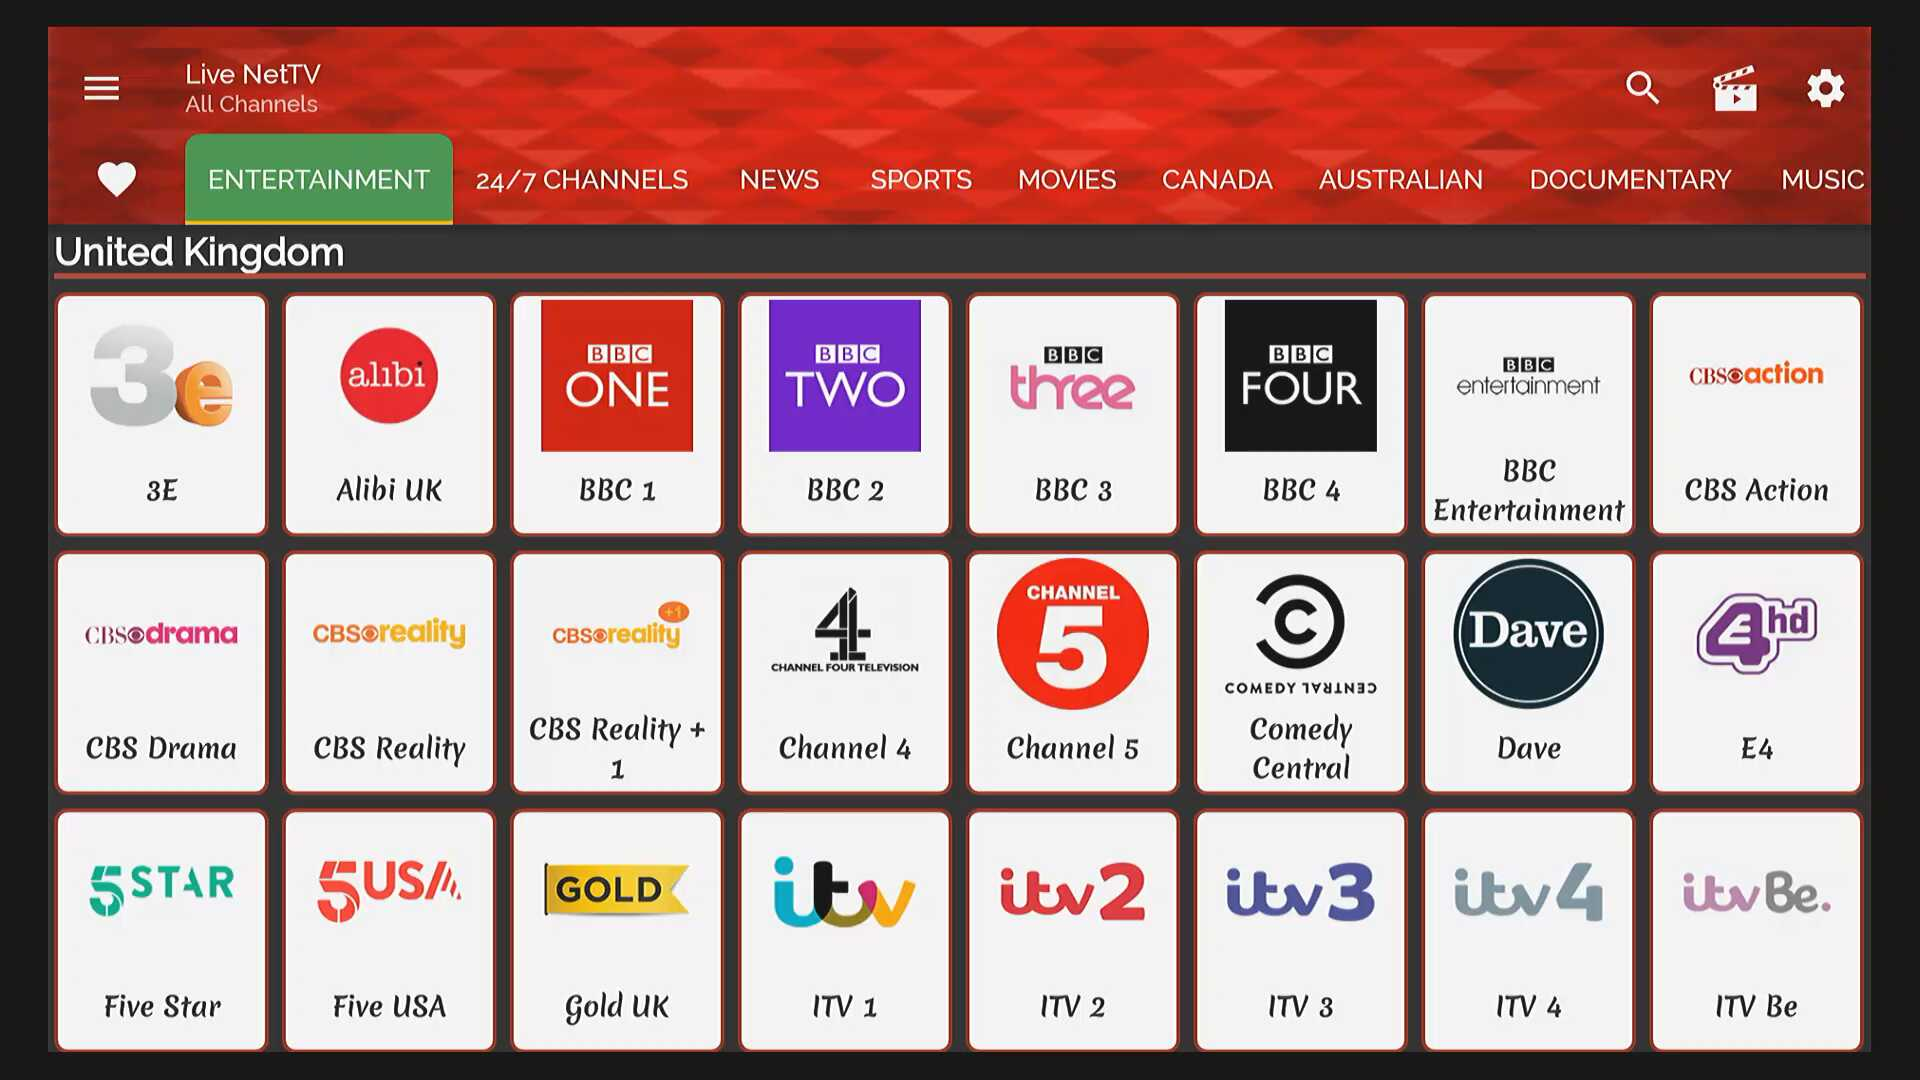 Download Live Net Tv Apk 2020 Install On Firestick Android